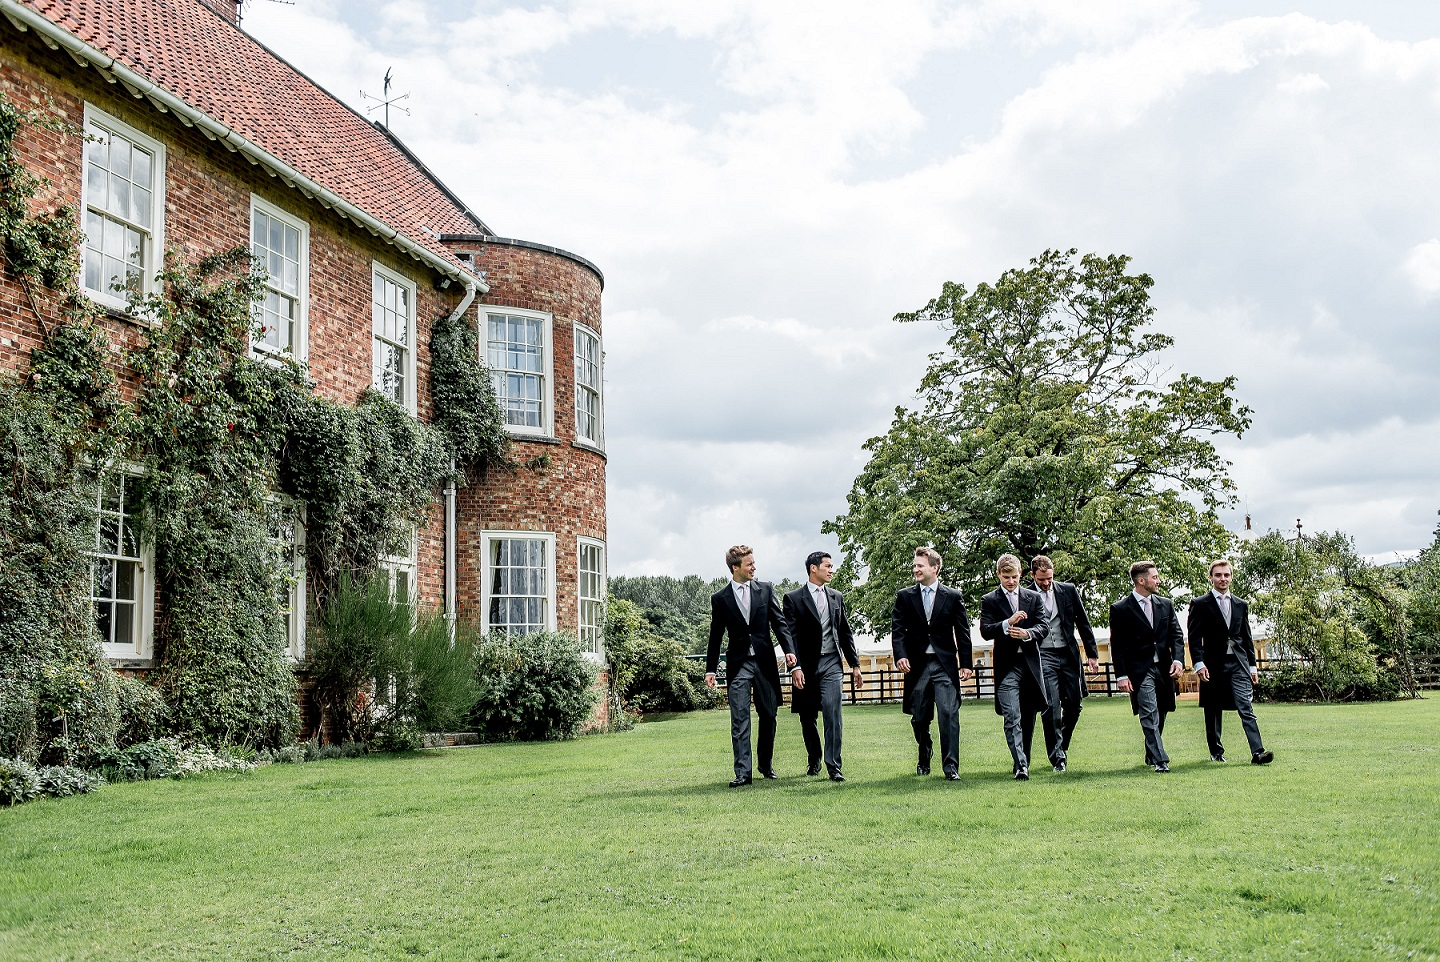 Groom and his groomsmen at Chapelgarth Estate